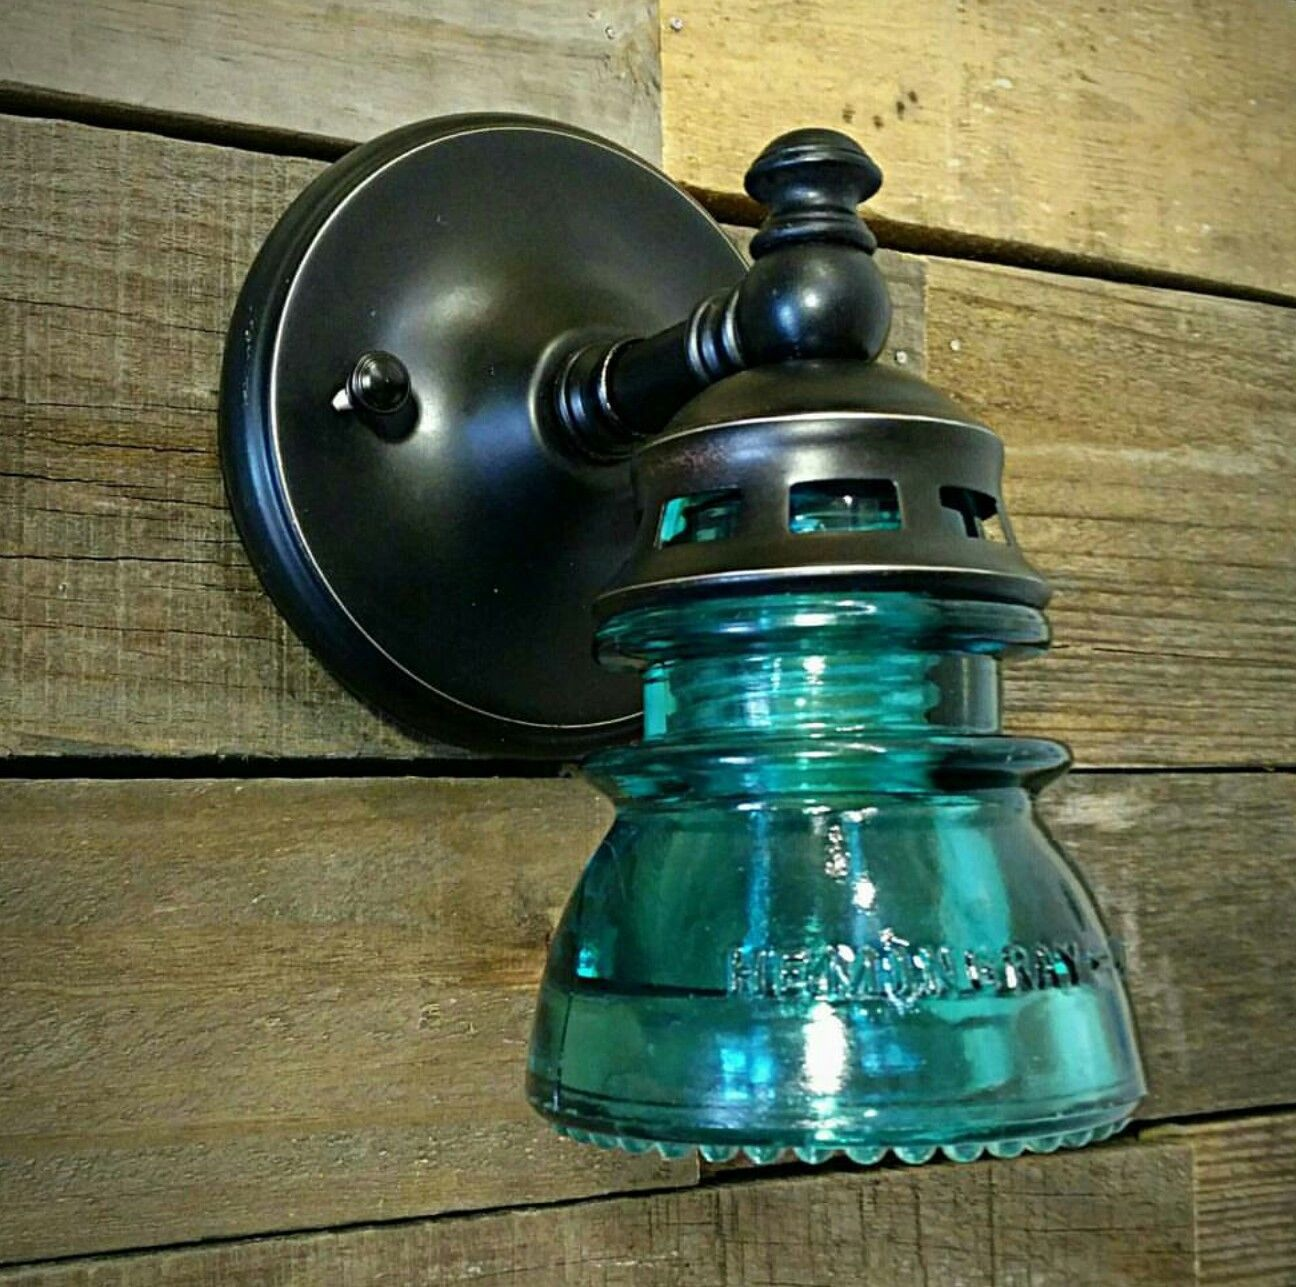 Httpsebayitmled glass sconce insulator lights vintage led glass sconce insulator lights vintage glass wall lighting bathroom lights ebay aloadofball Choice Image